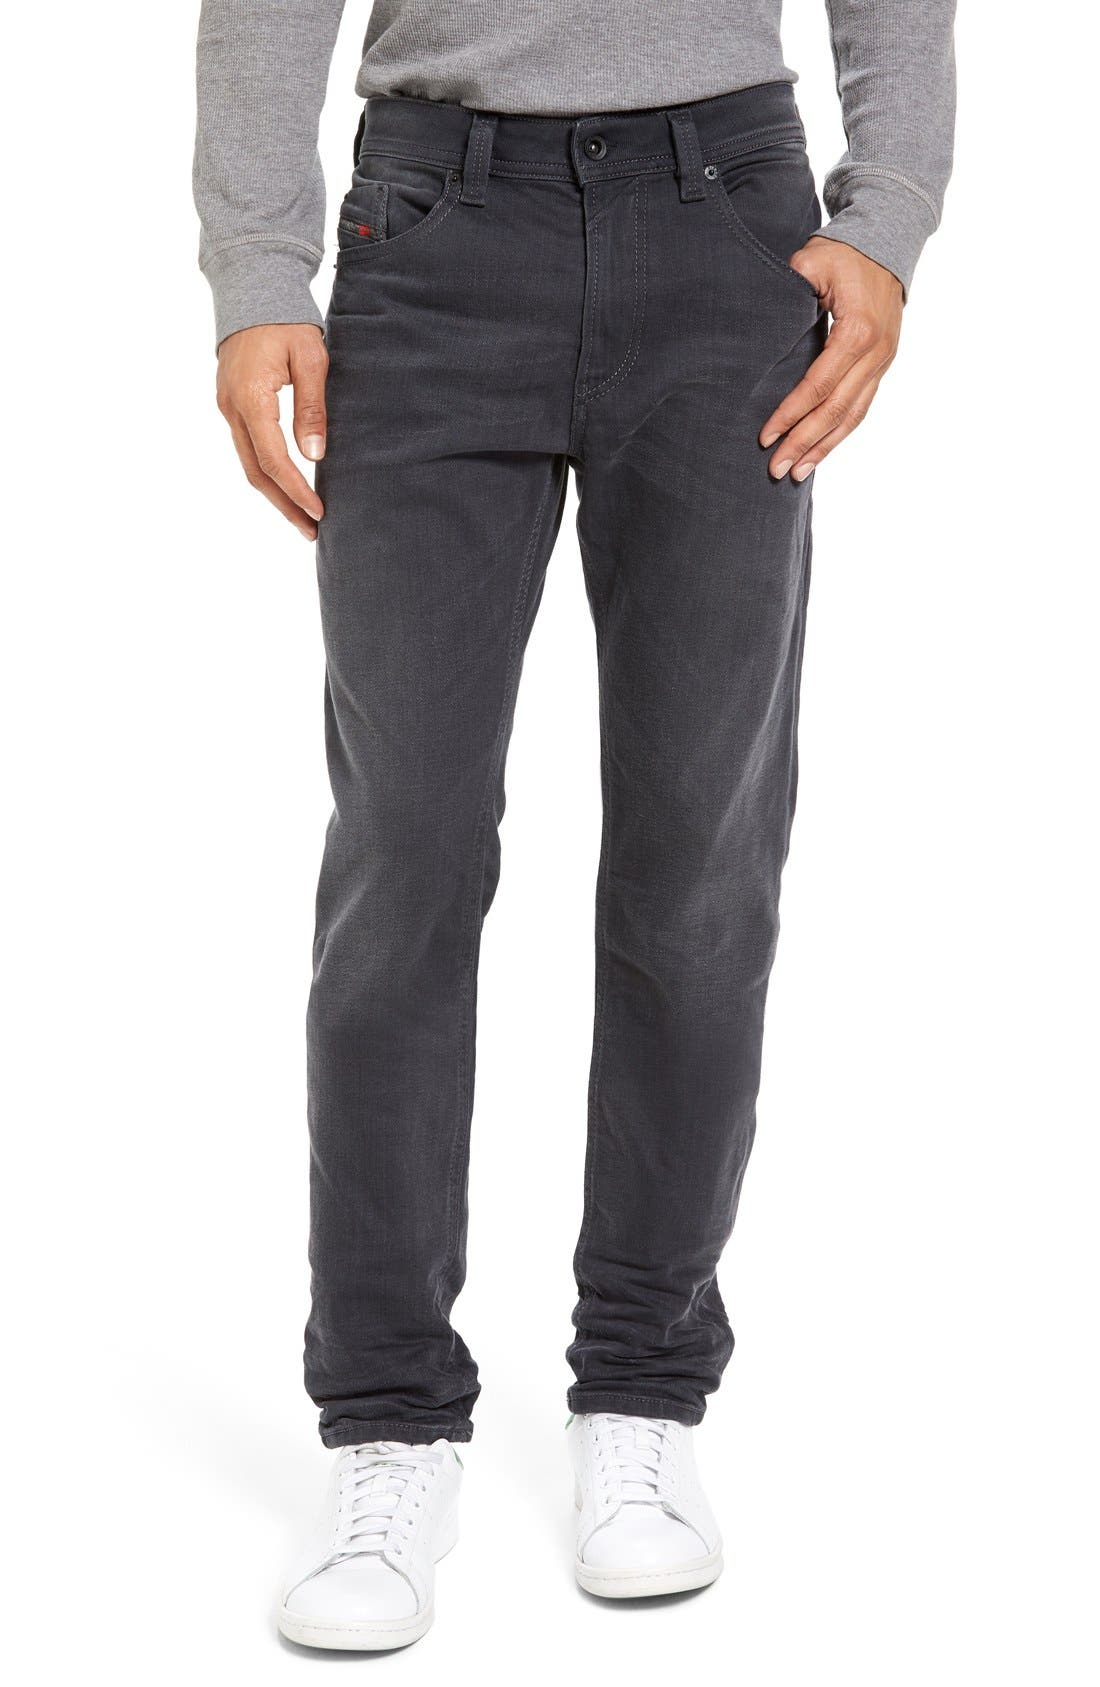 Thommer Slim Fit Jeans,                         Main,                         color, 859X